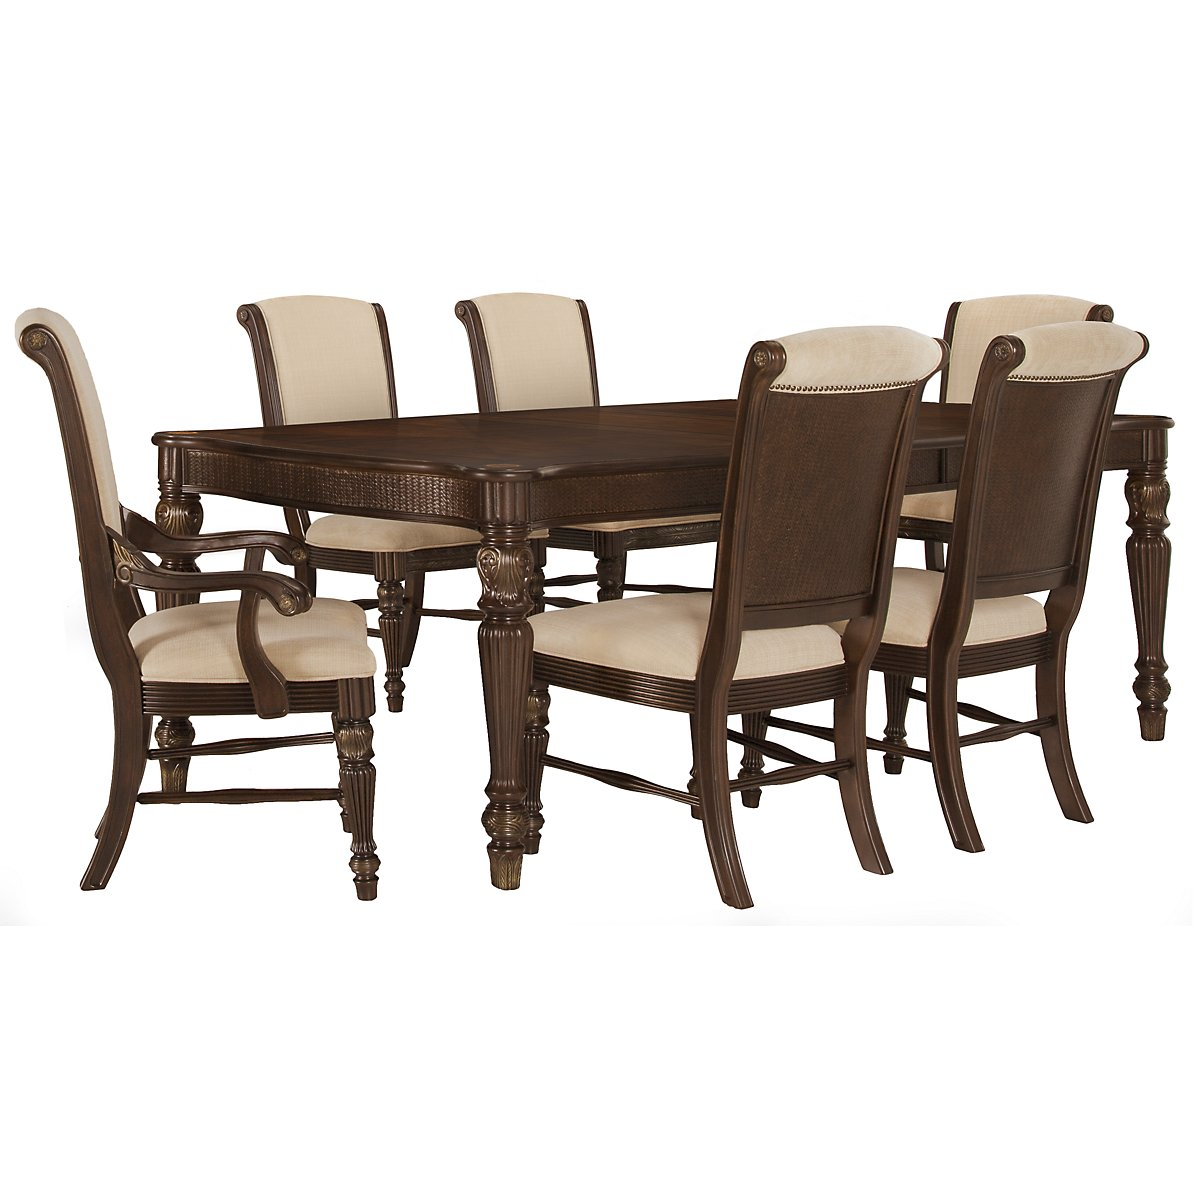 Tradewinds Dark Tone Rectangular Table & 4 Upholstered Chairs